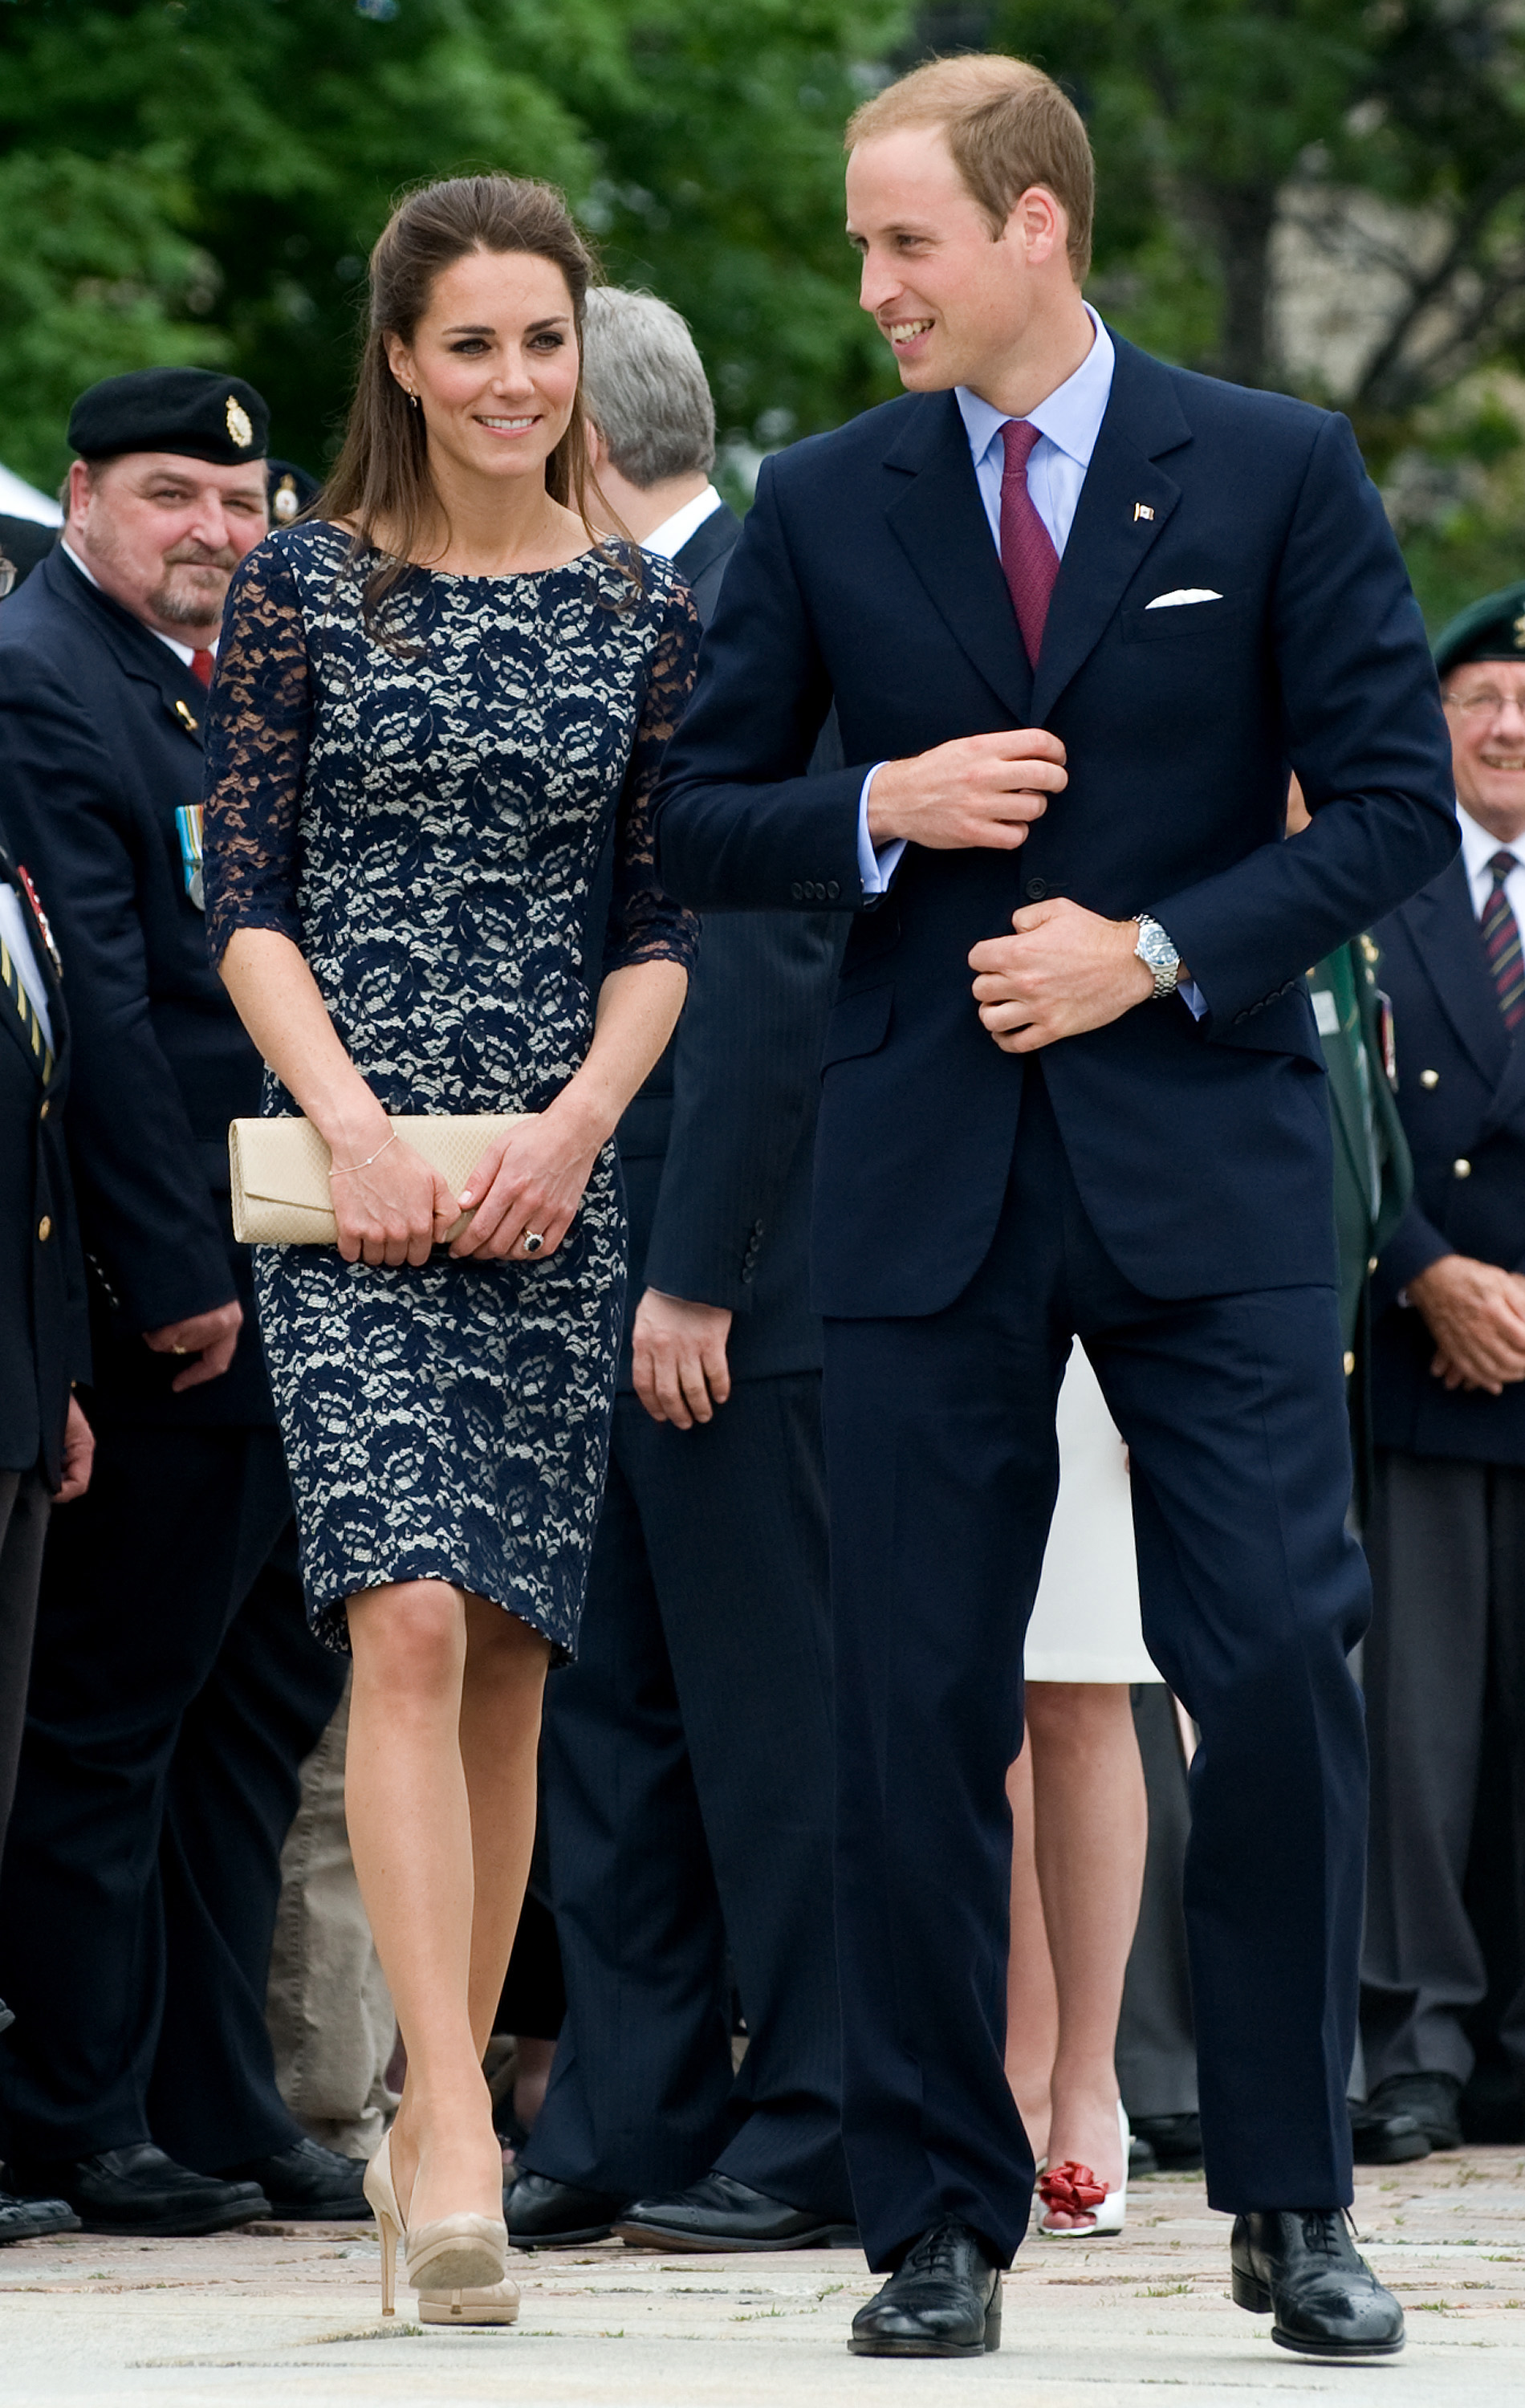 June 30th, 2011 Kate and William arrive in Ottawa for a wreath-laying ceremony at the National War Memorial.   Kate wears an Erdem lace dress, adapted from the Cecile dress